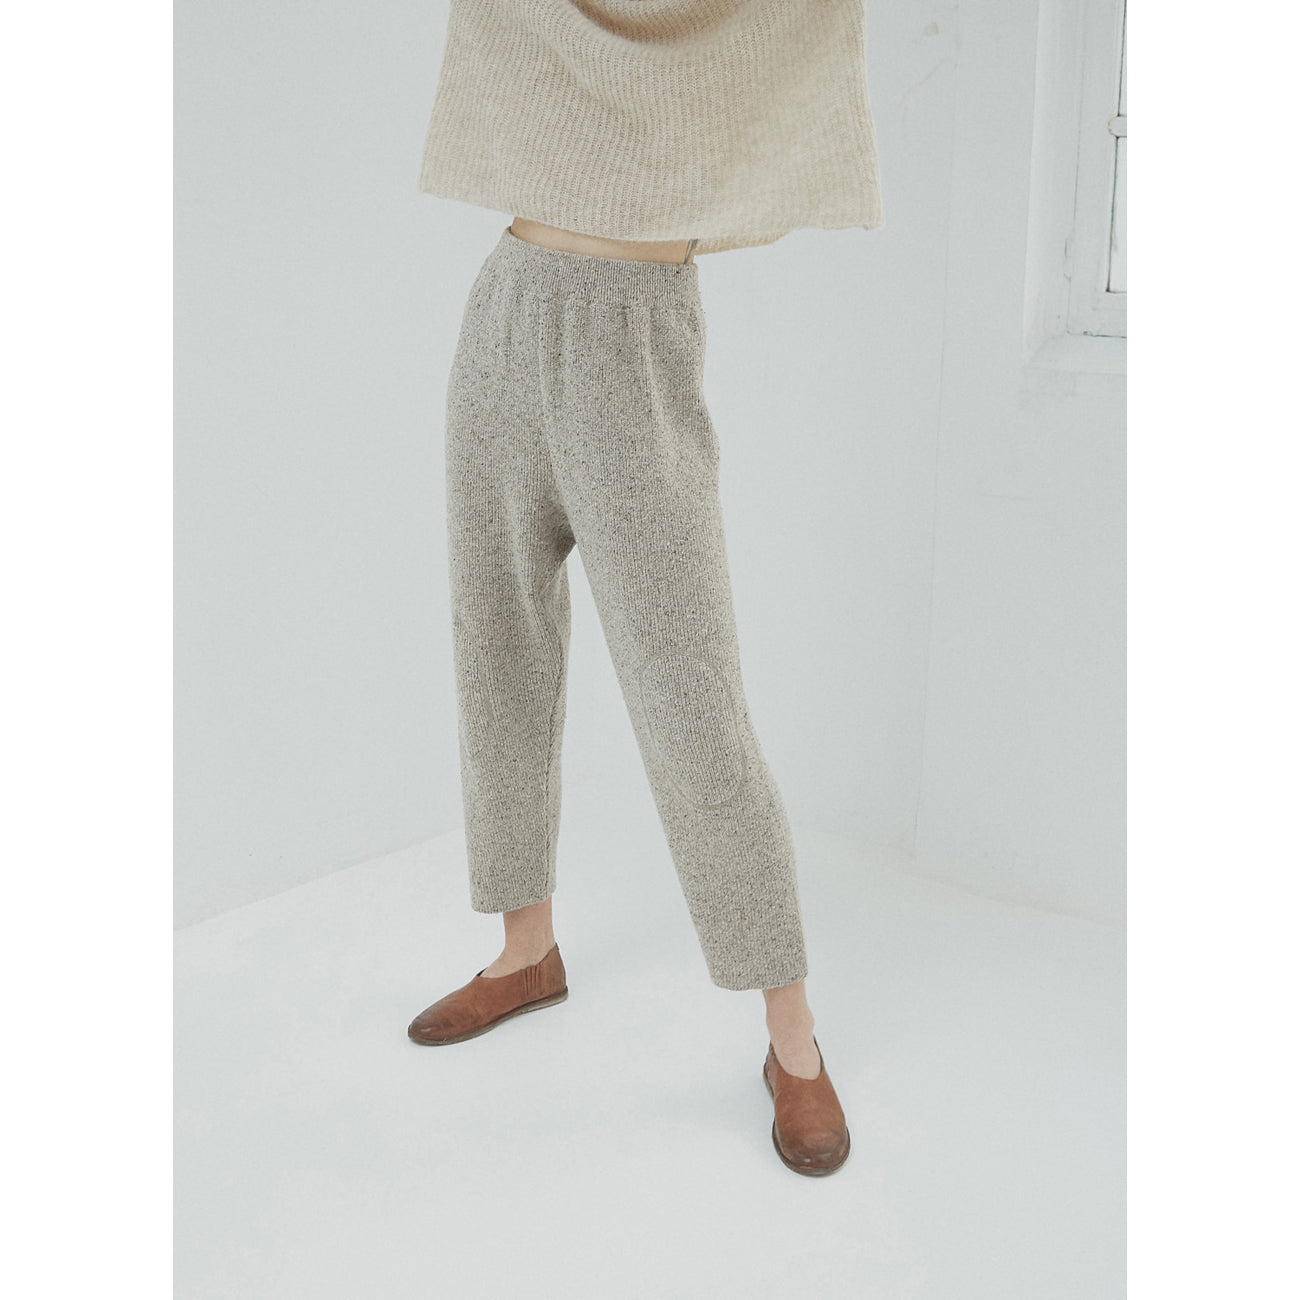 soft wool knit pants in taupe